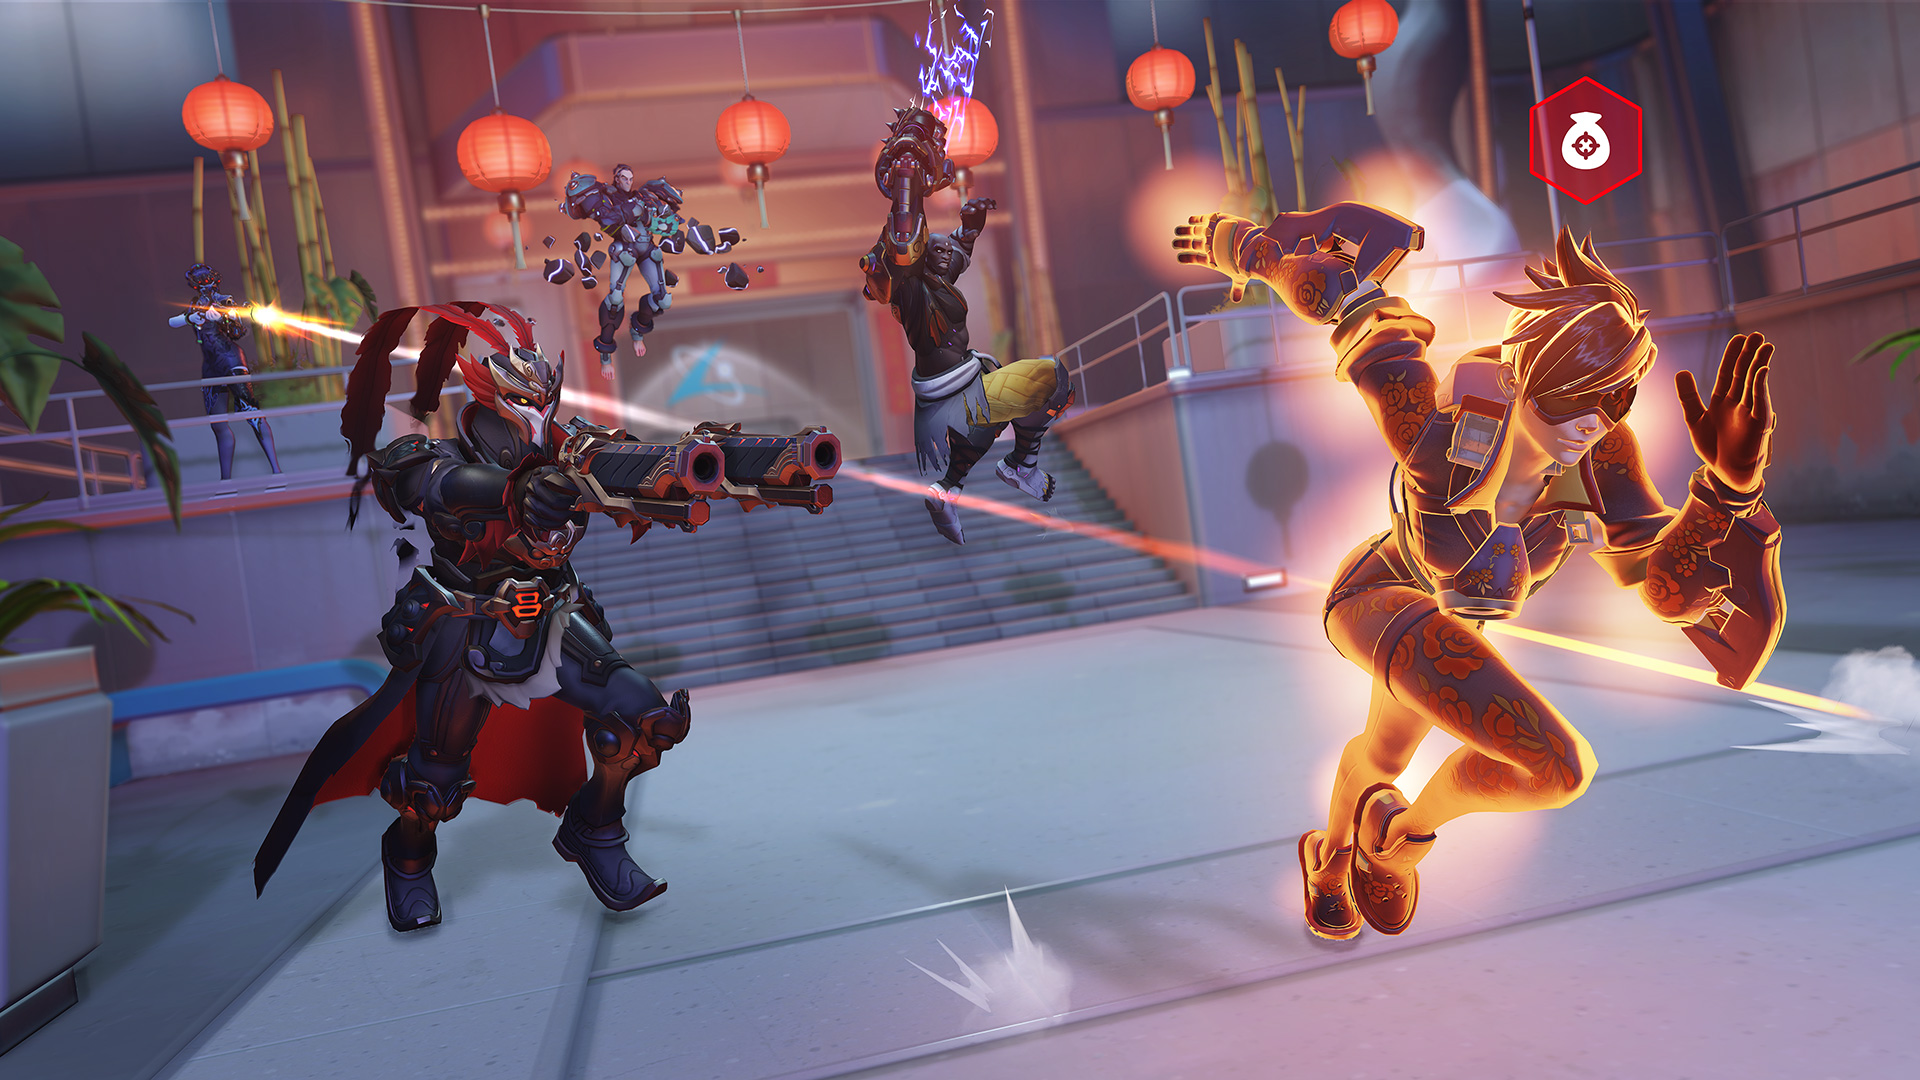 Overwatch's Lunar New Year event is up and running with a Bounty Hunter mode screenshot